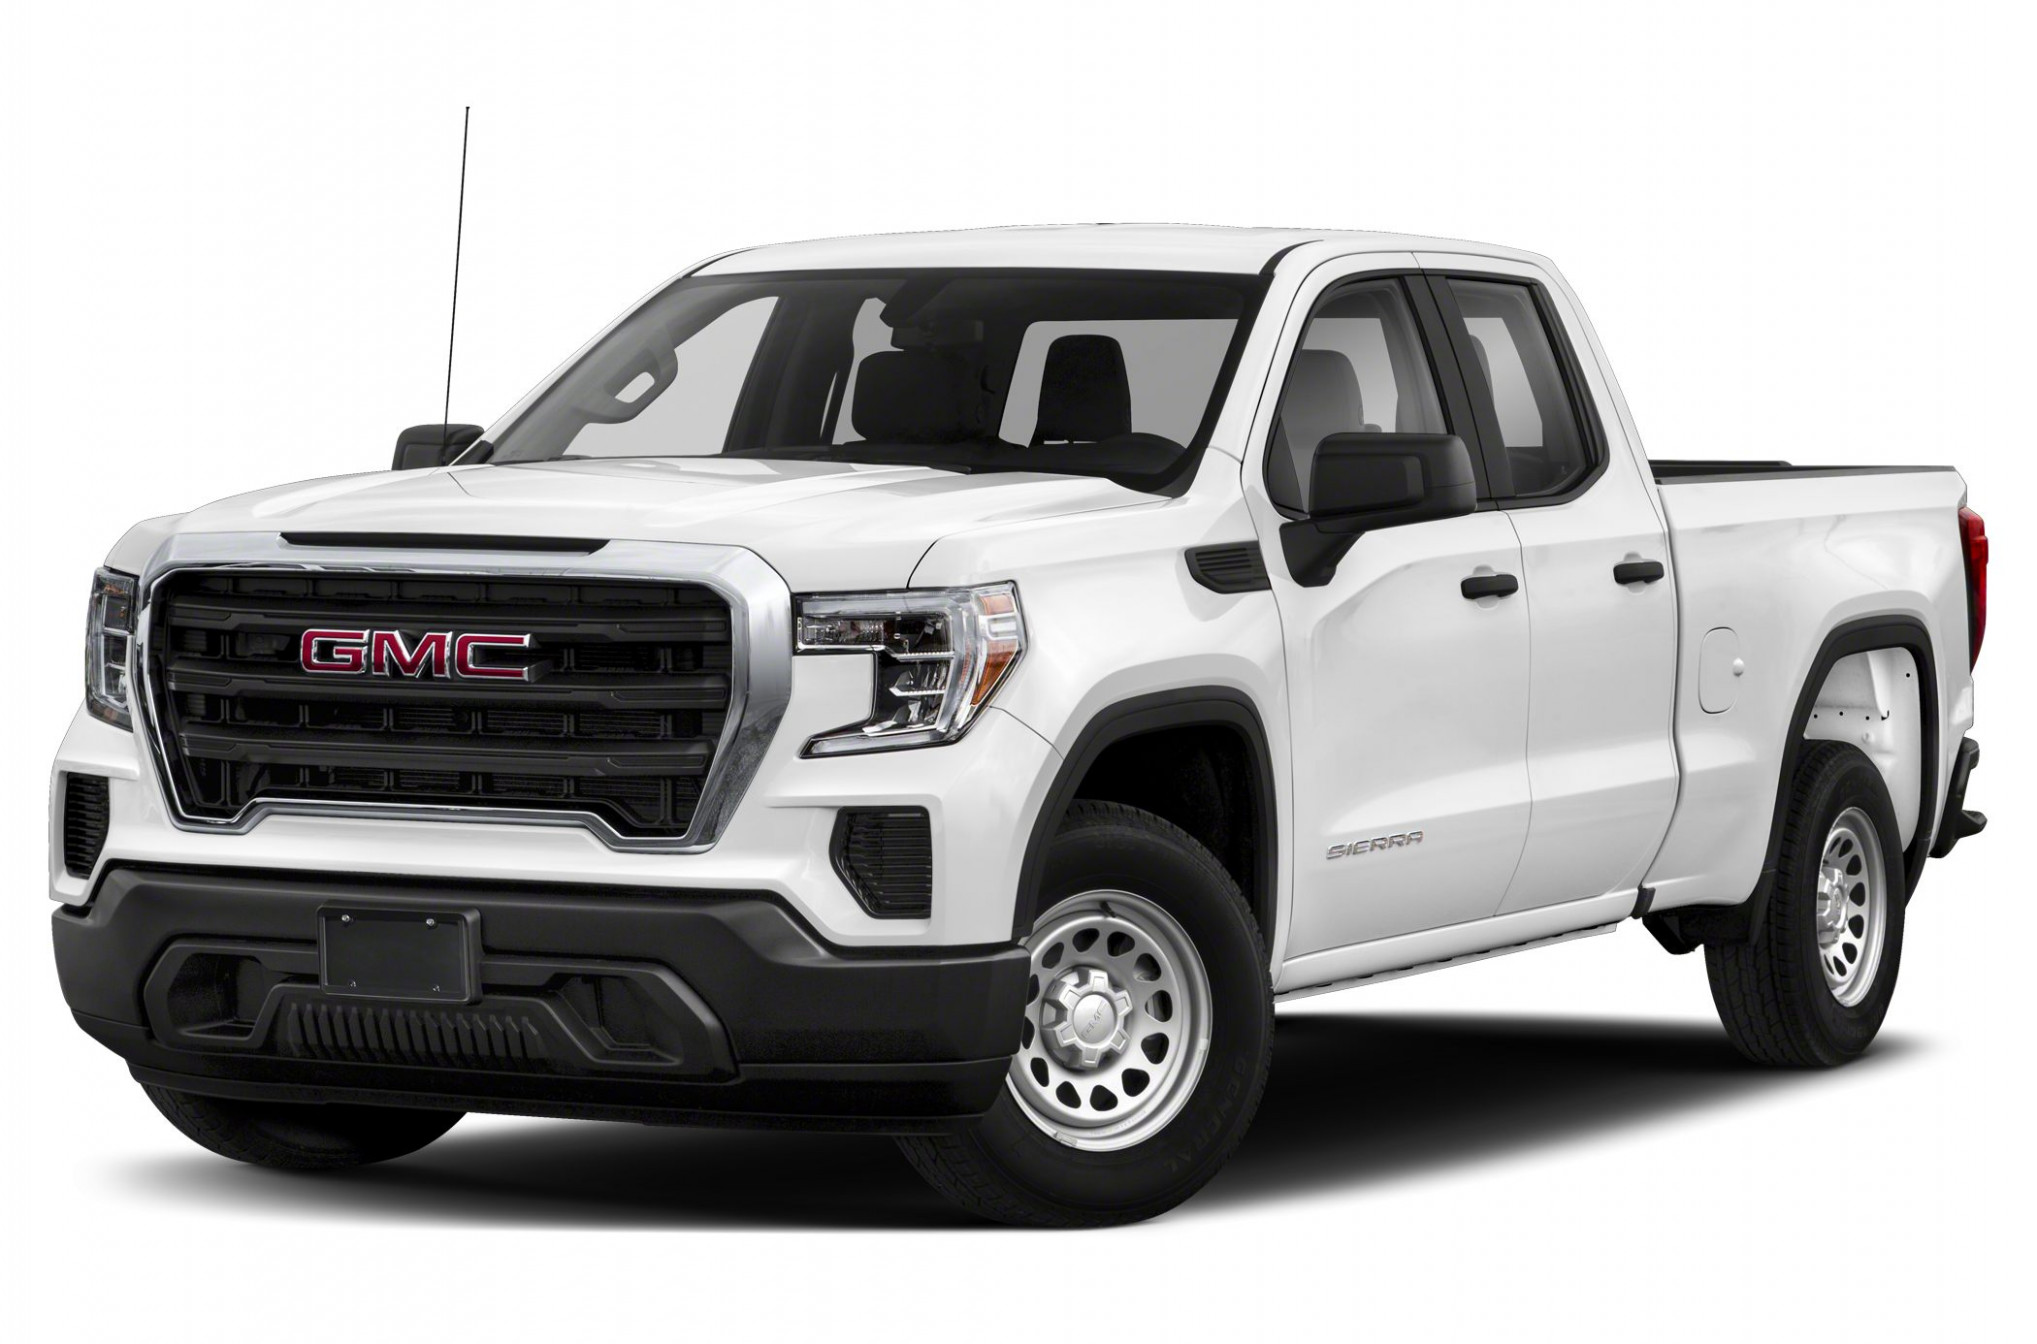 8 GMC Sierra 8 Elevation 8x8 Double Cab 8.8 ft. box 187.8 in. WB  Pricing and Options